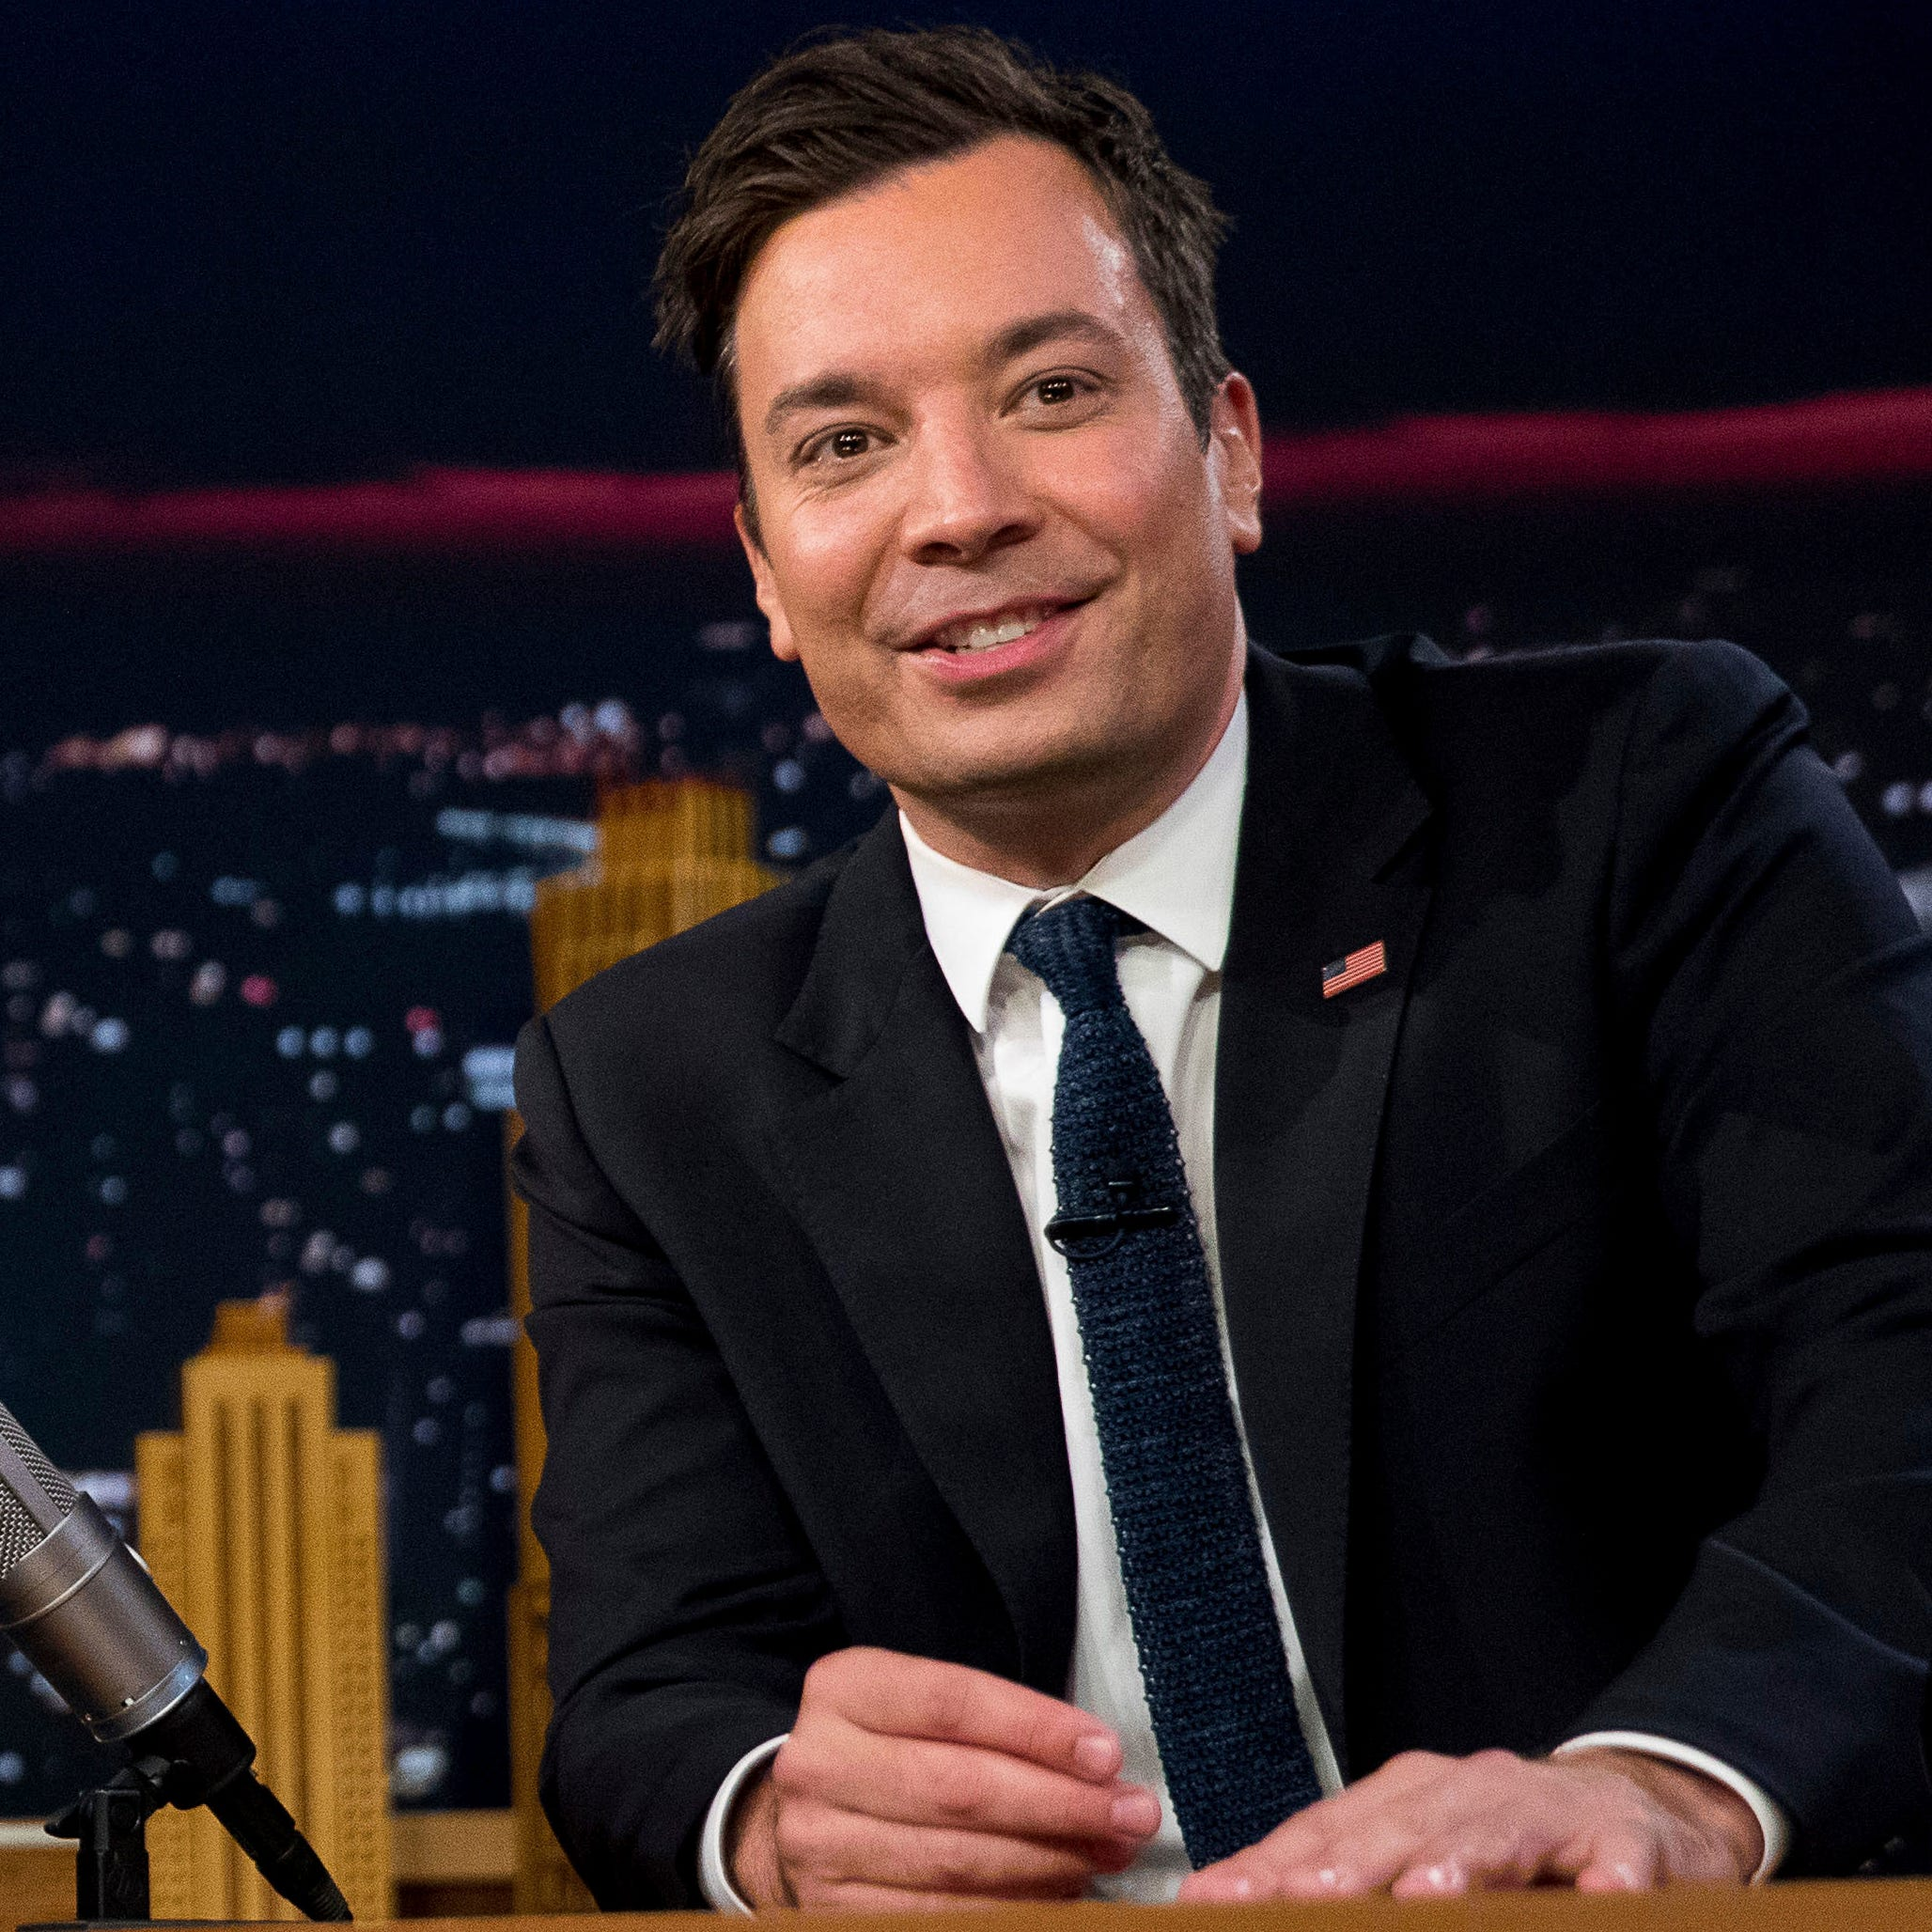 Watch: Jimmy Fallon jokes about Walnut Hills' perfect ACT scores